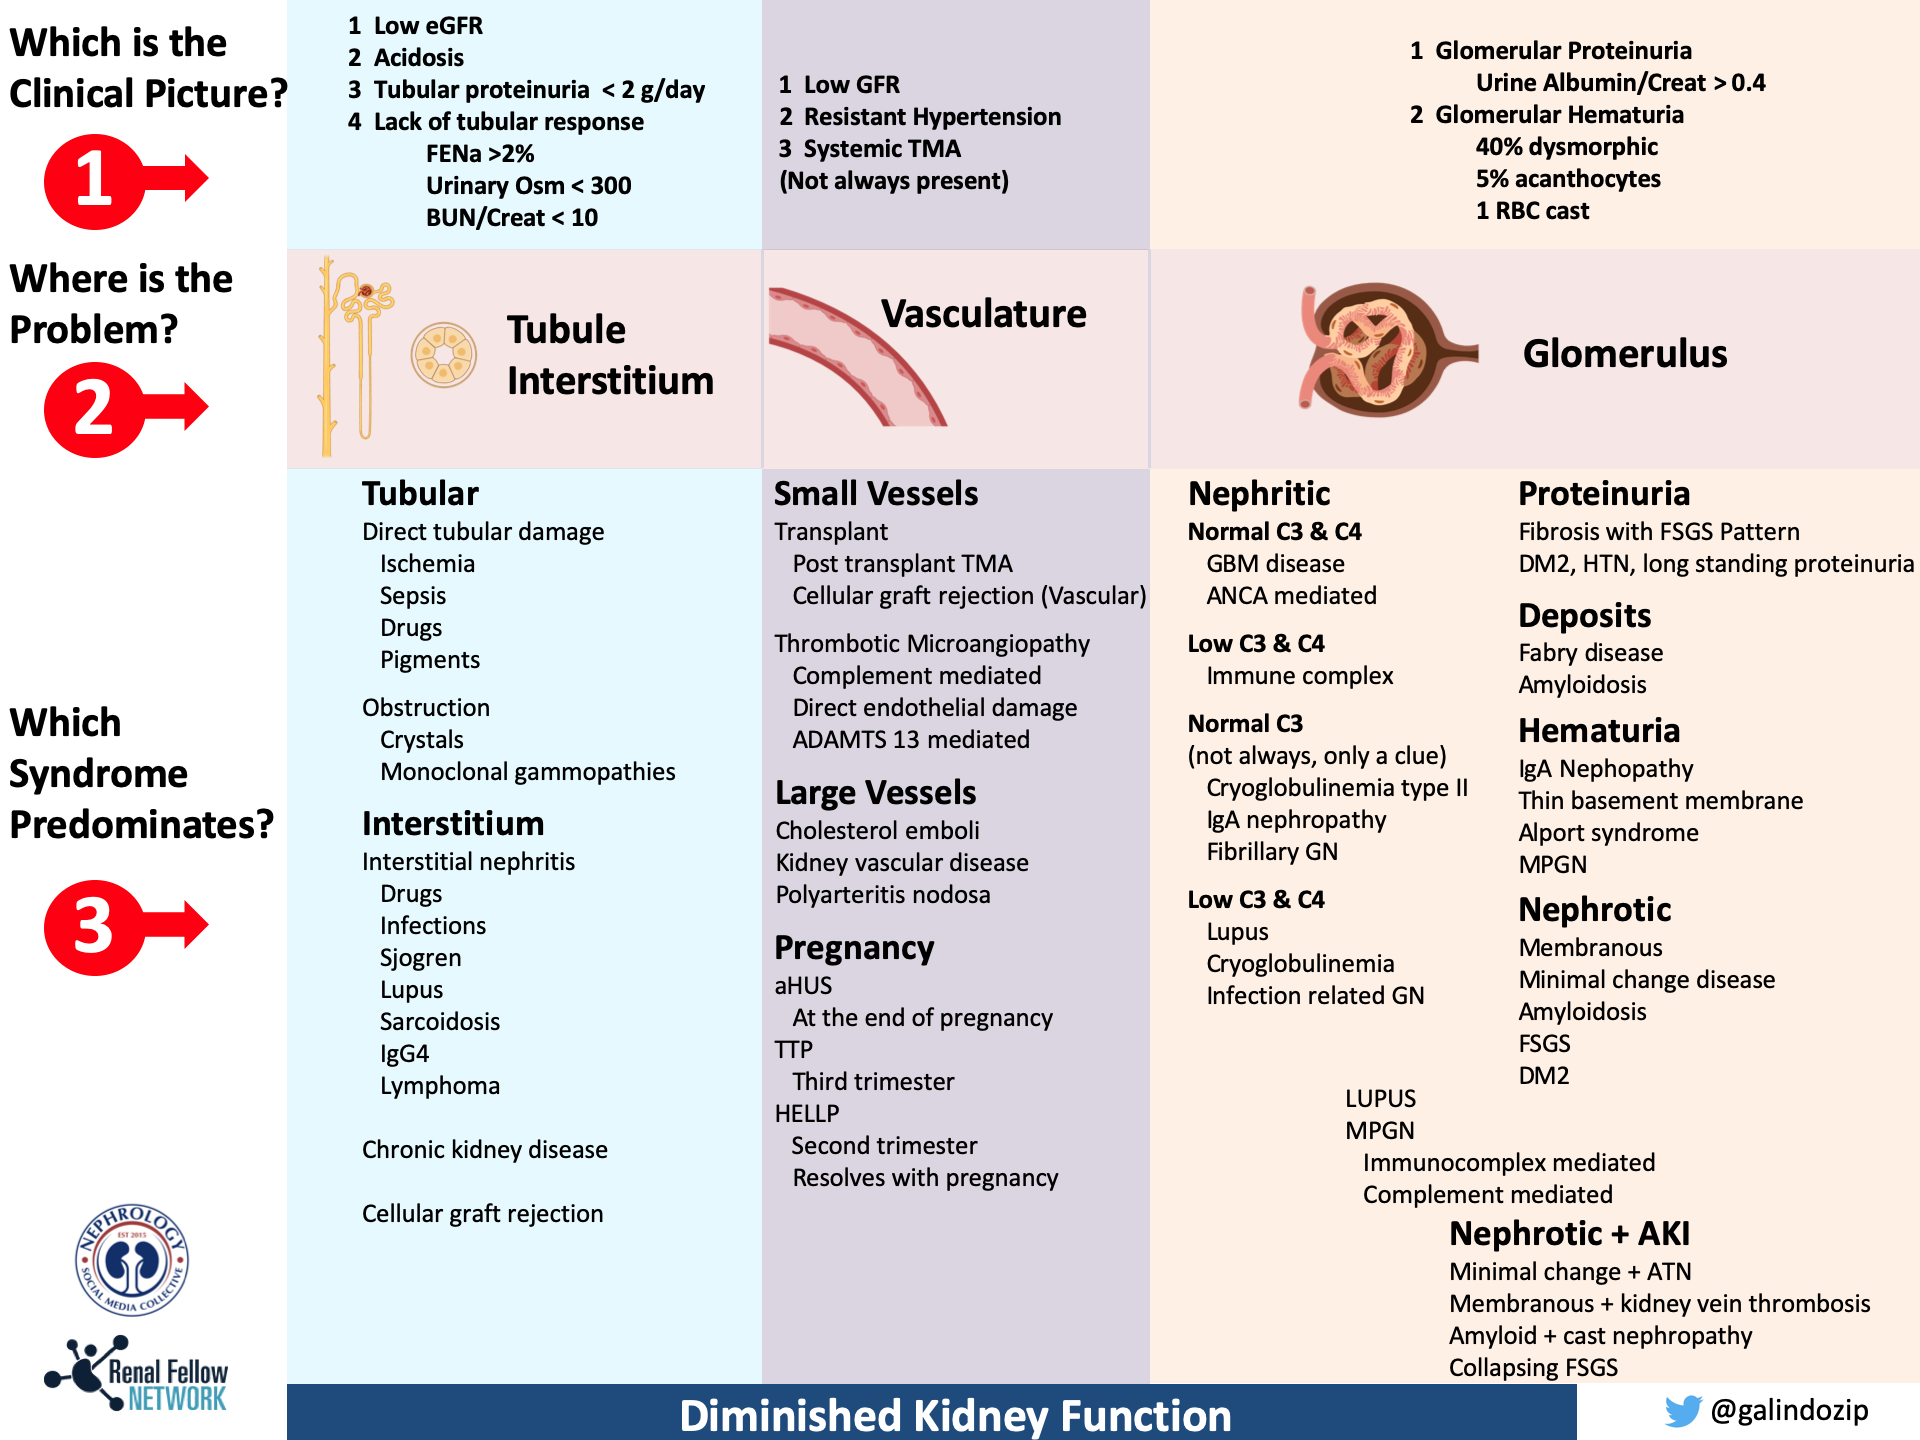 A Guide To Compartmentalize The Etiologies Of Kidney Disease The Kidney Syndromes Renal Fellow Network